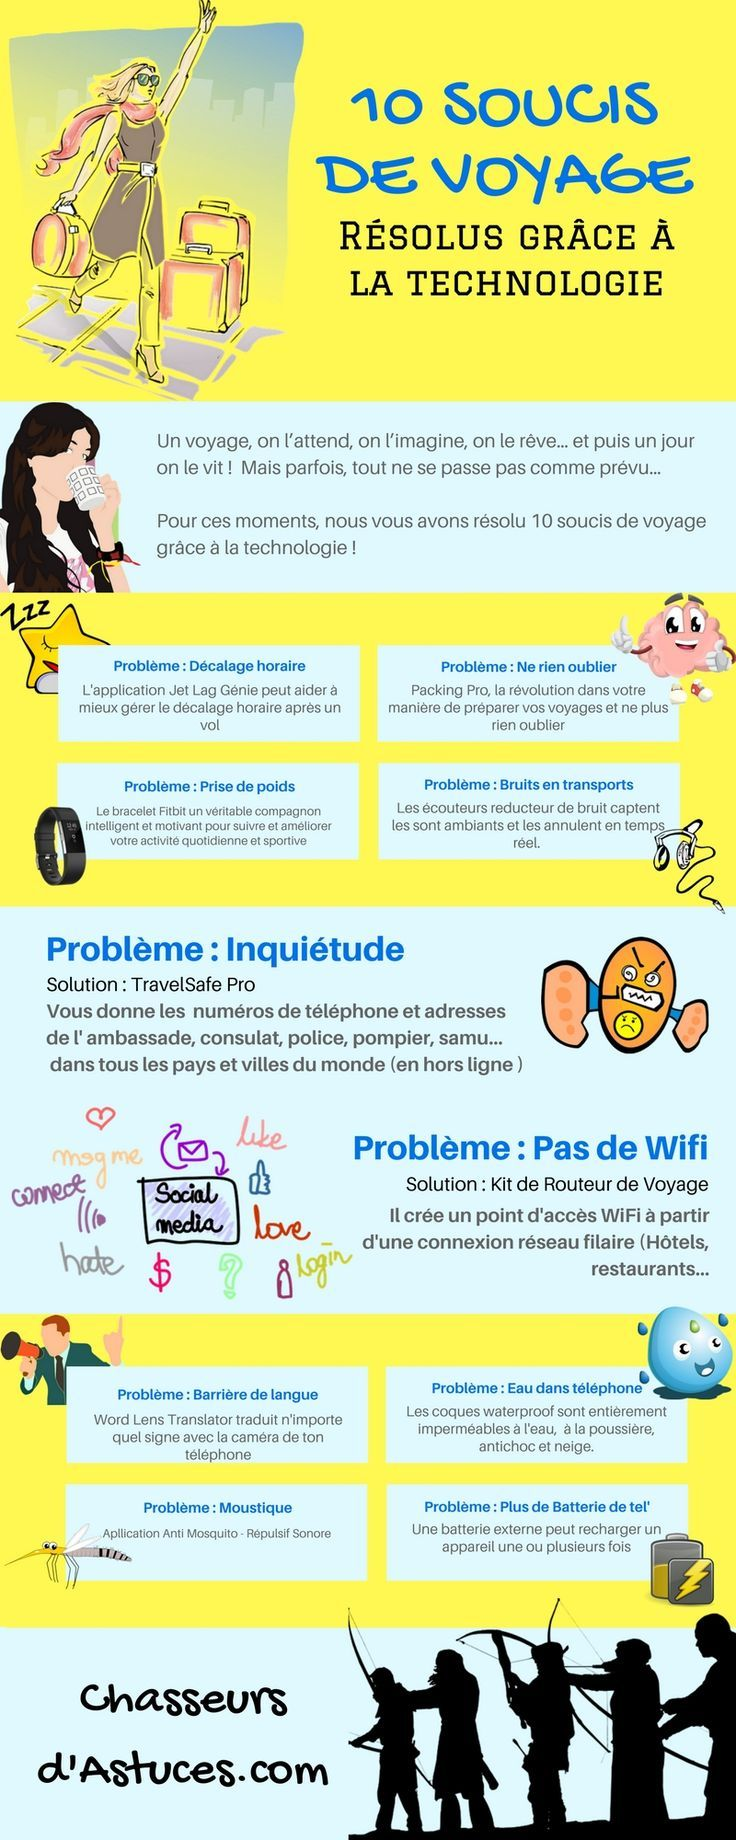 Travel and Trip infographic 10 Travel concerns resolved with Infographic Technology Description We've solved 10 travel concerns with technology! Because when traveling, everything does not go as planned, so … – Infographic Source –